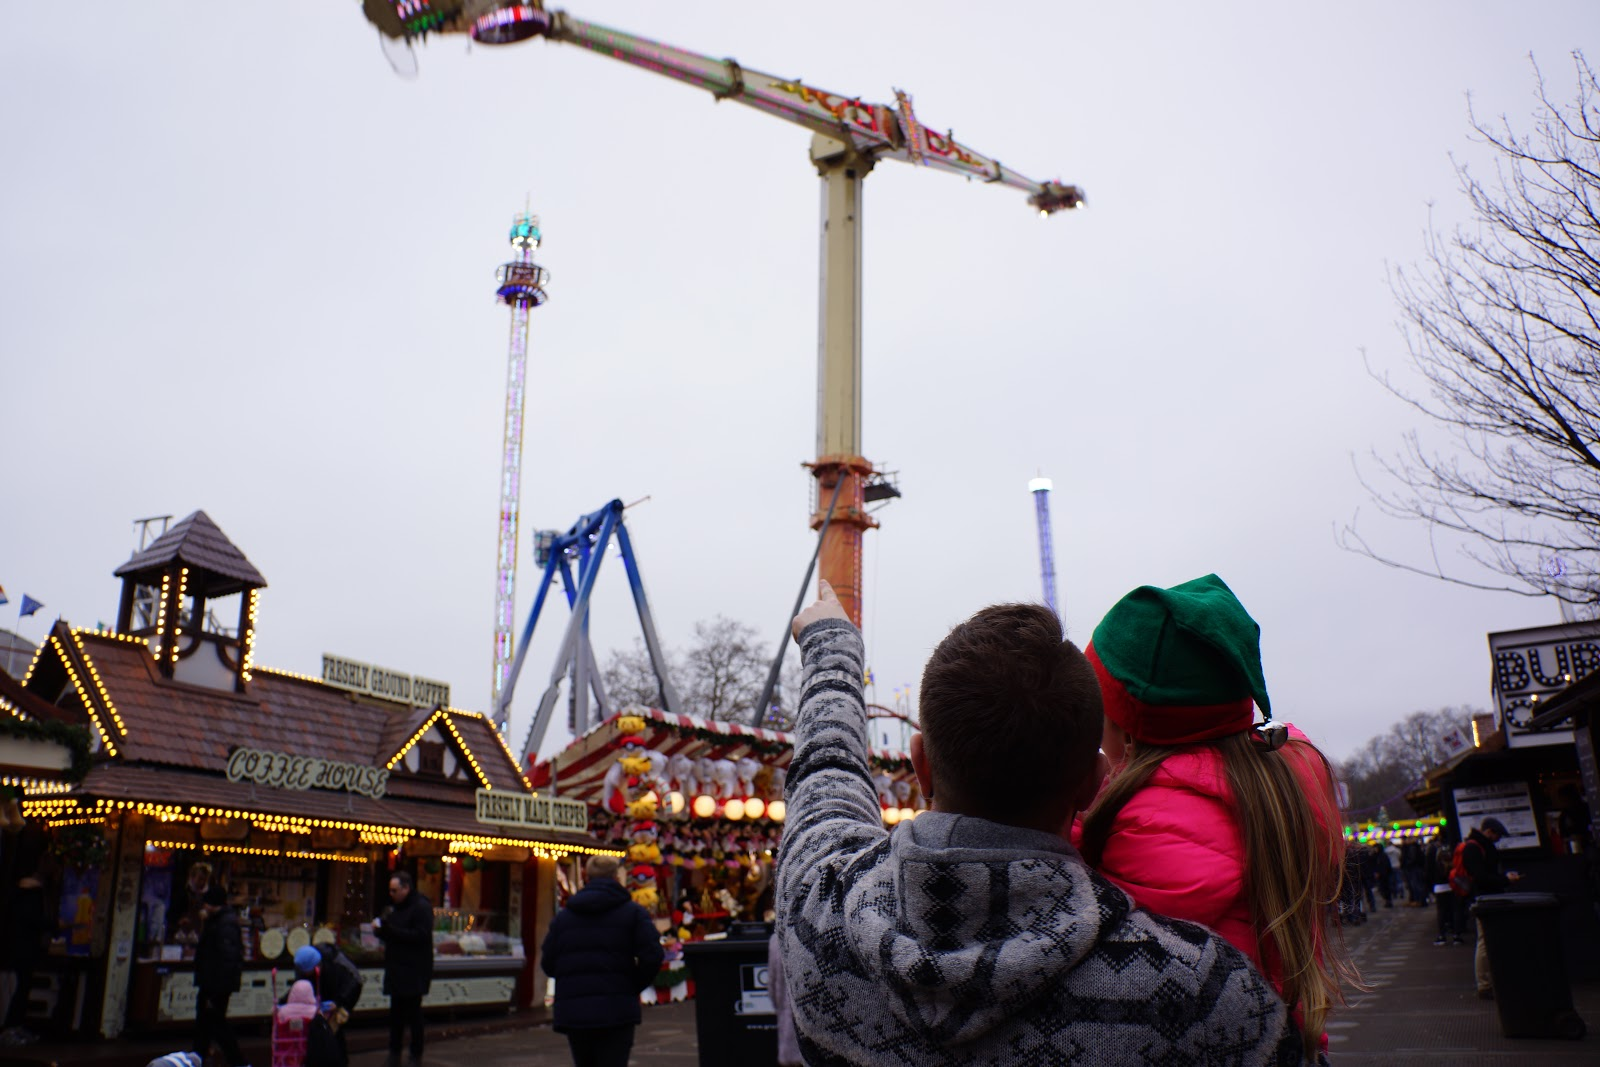 dad and daughter looking at rides at london winter wonderland